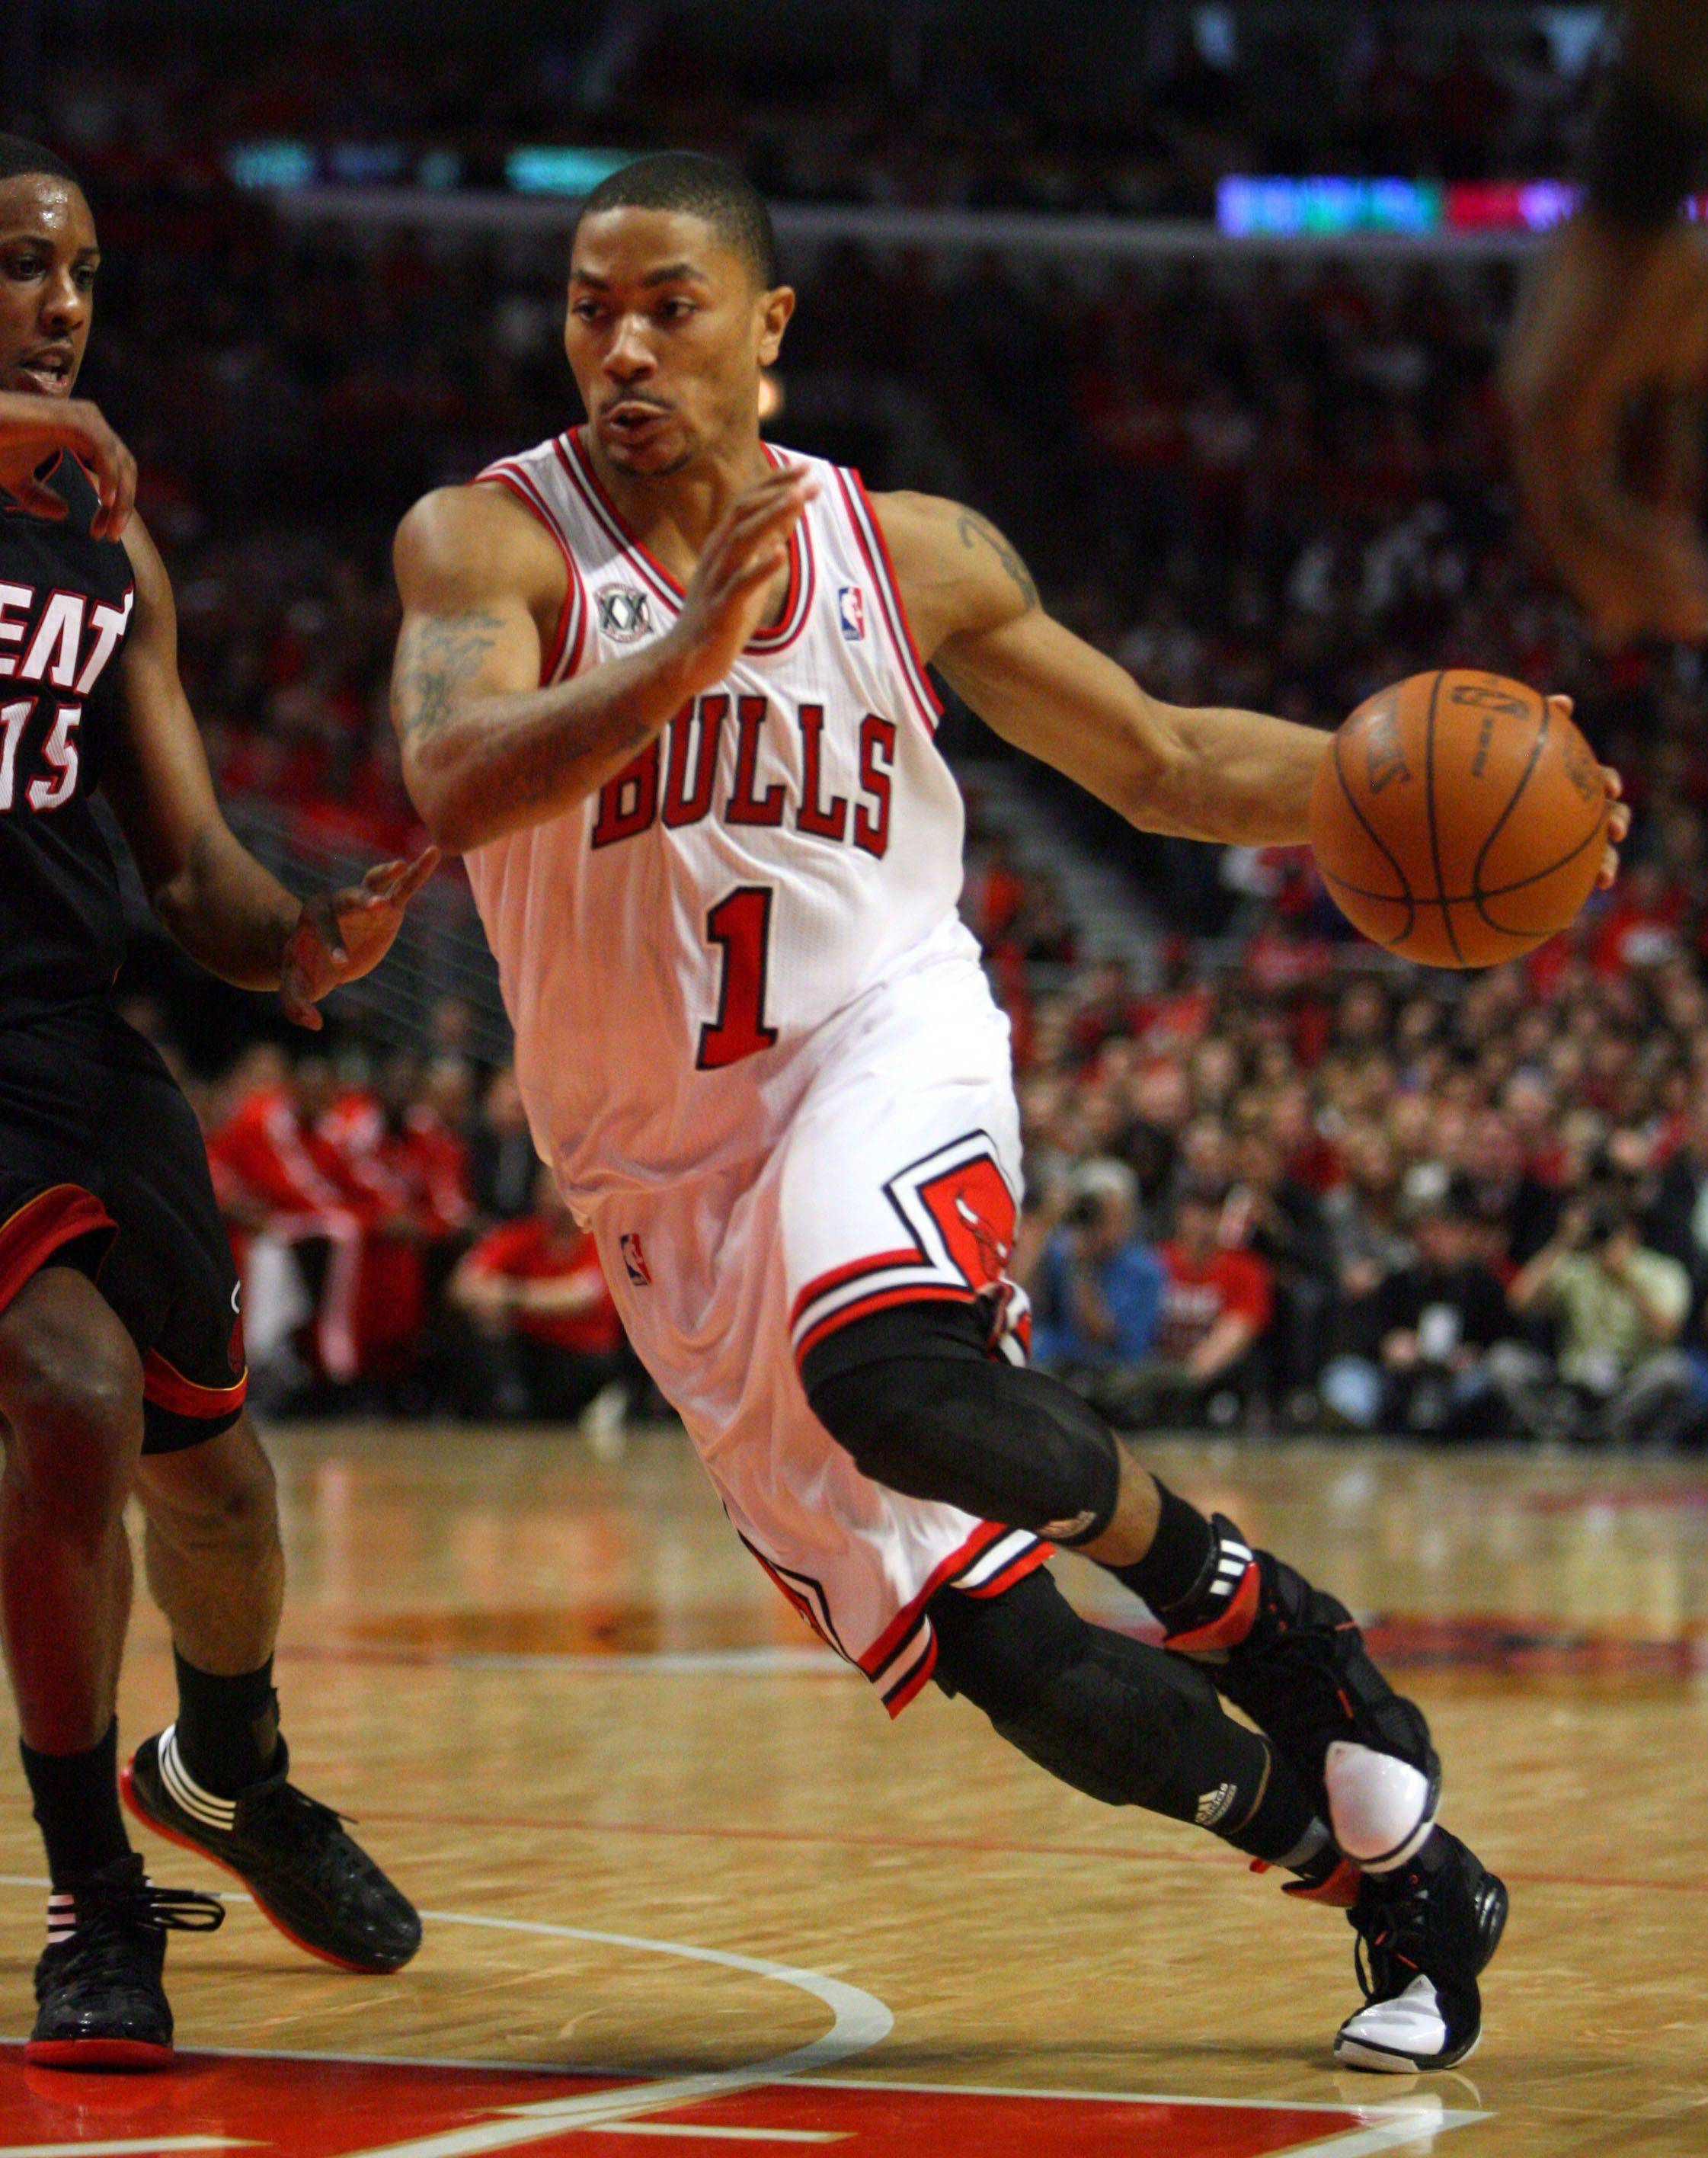 Chicago Bulls point guard Derrick Rose drives on Miami Heat point guard Mario Chalmers.